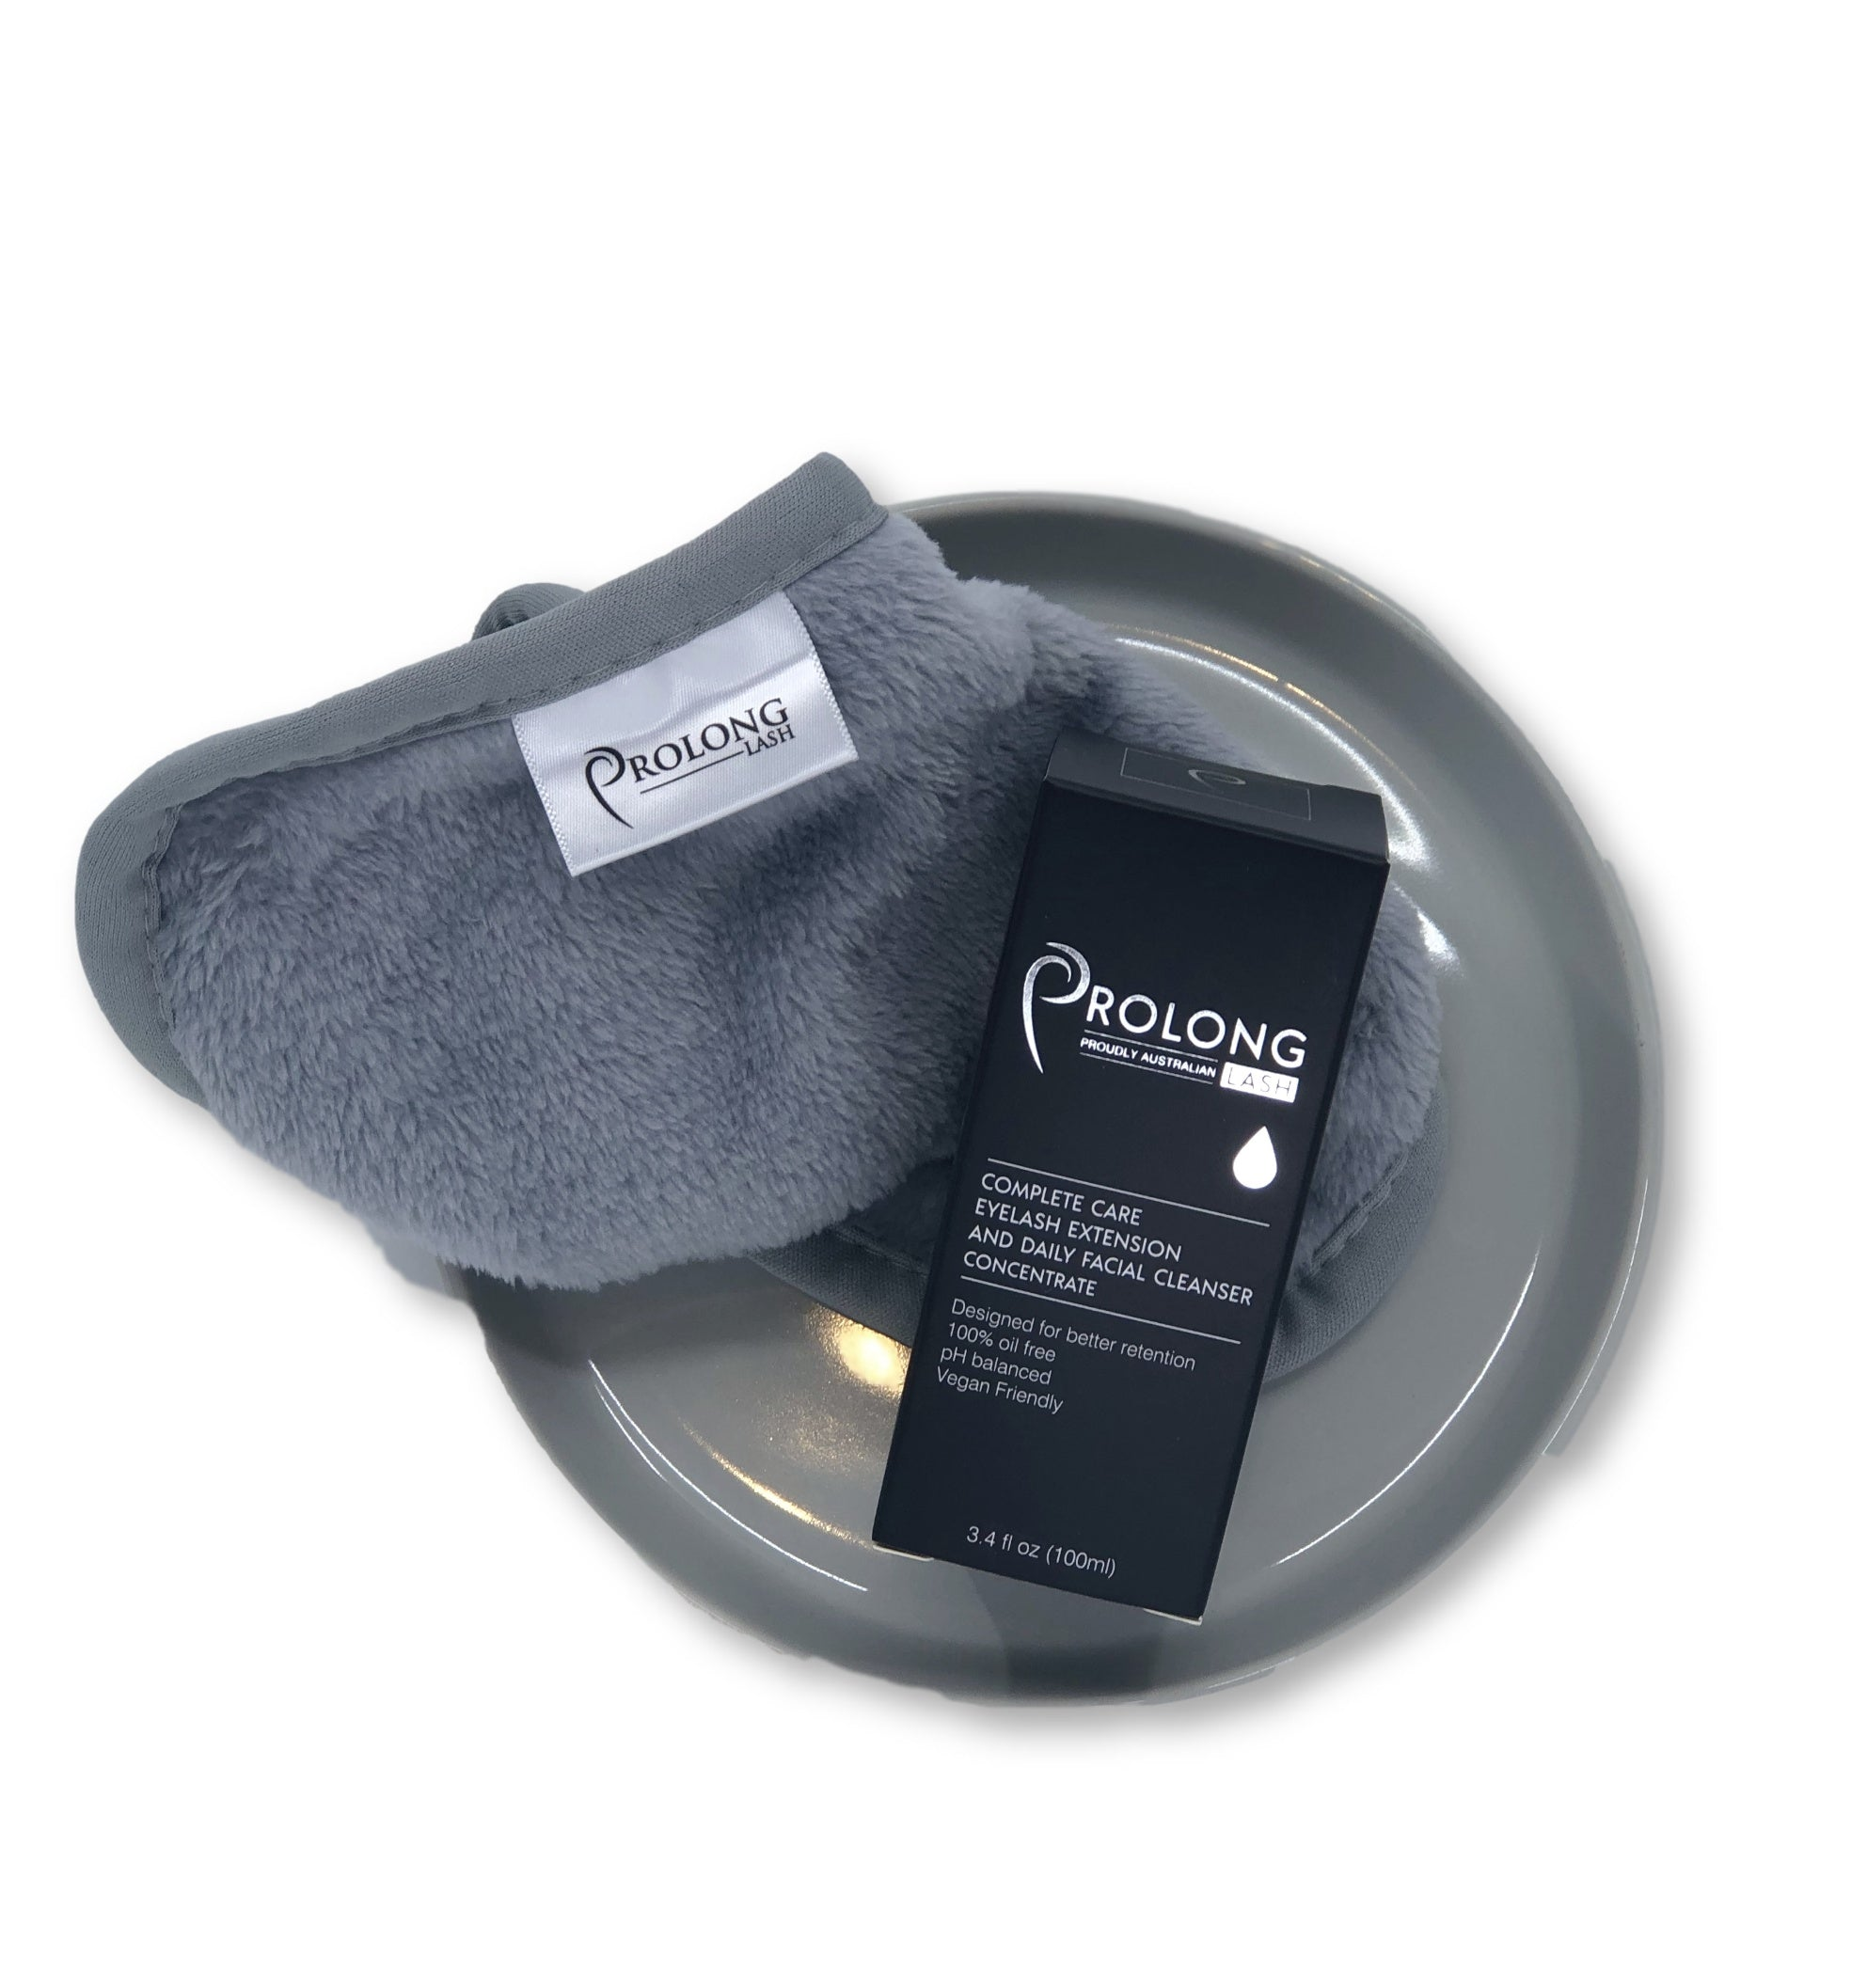 BUY 2 get 1 FREE - FACIAL CLEANING CLOTHS  - Contains 6 Face Cloths